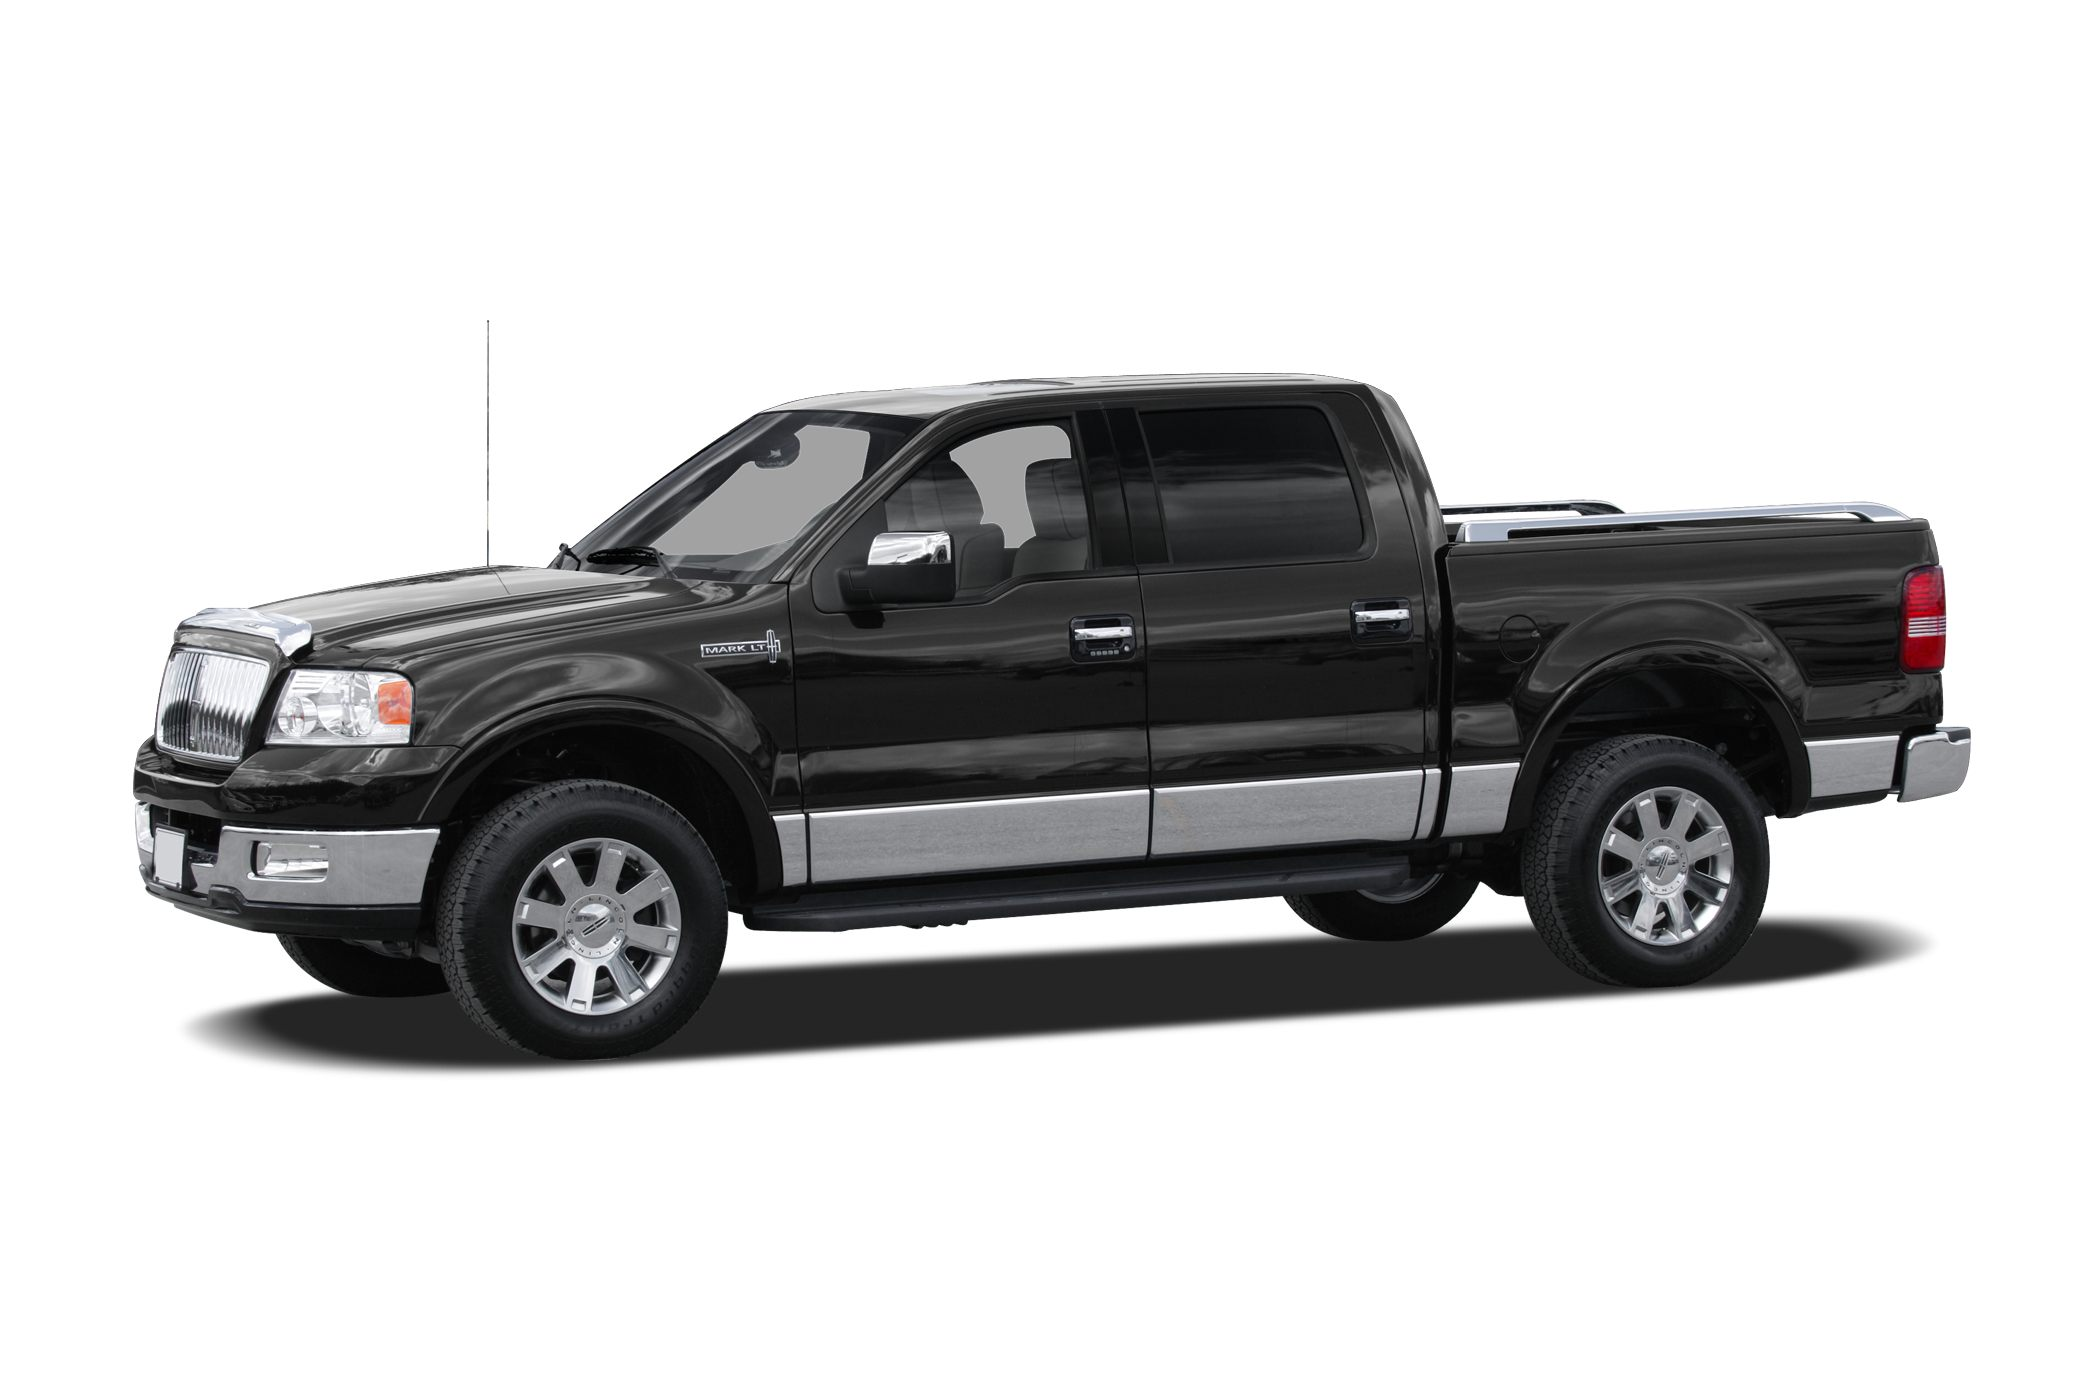 2008 Lincoln Mark LT Crew Cab Pickup for sale in Dothan for $21,995 with 88,902 miles.